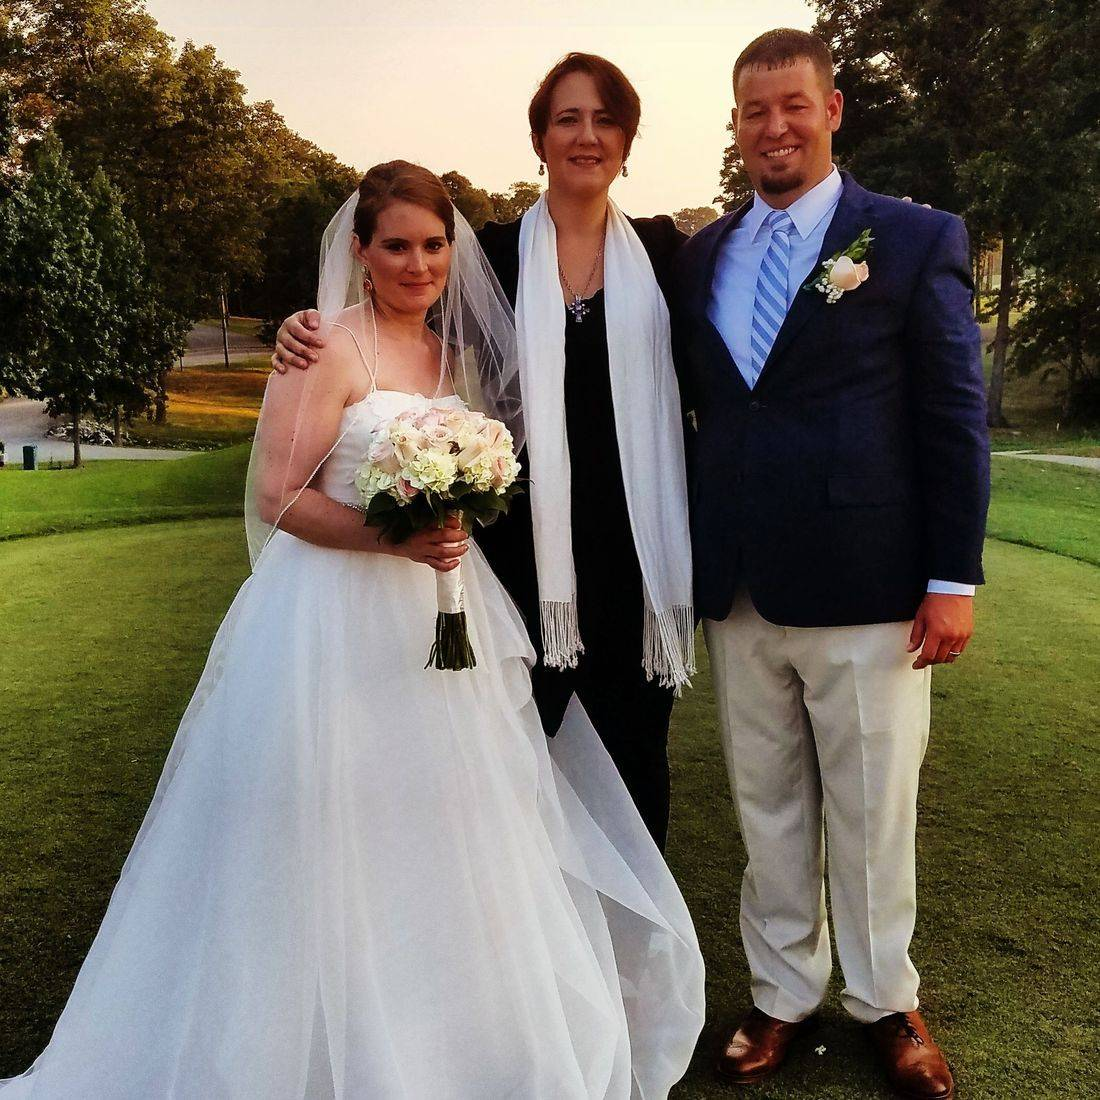 Golf club weddings, charlotte, NC, officiant, minister, wedding venues